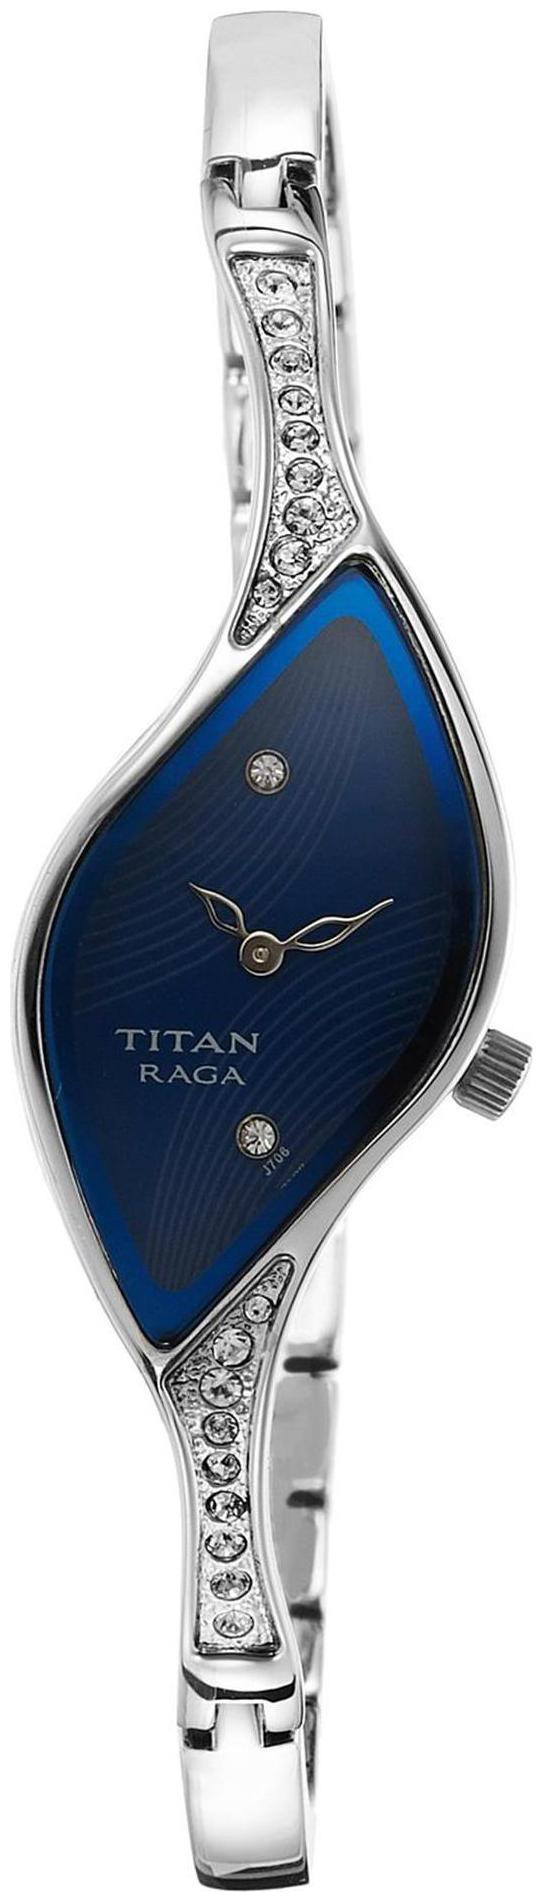 Titan Raga 9710SM01 Women Analog Watches by Watch Apeal